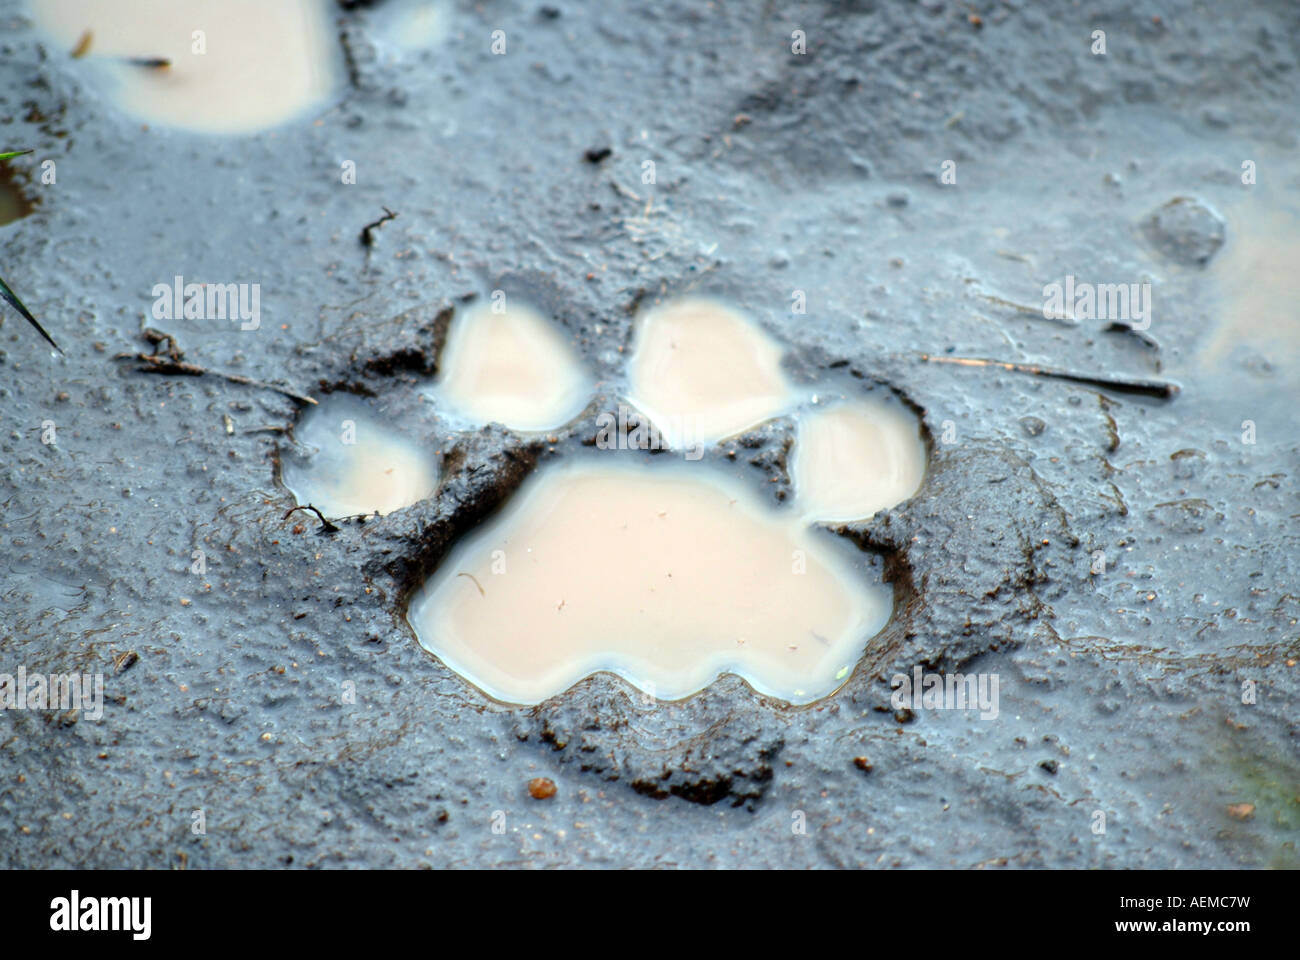 paw print in mud stock photos paw print in mud stock images page